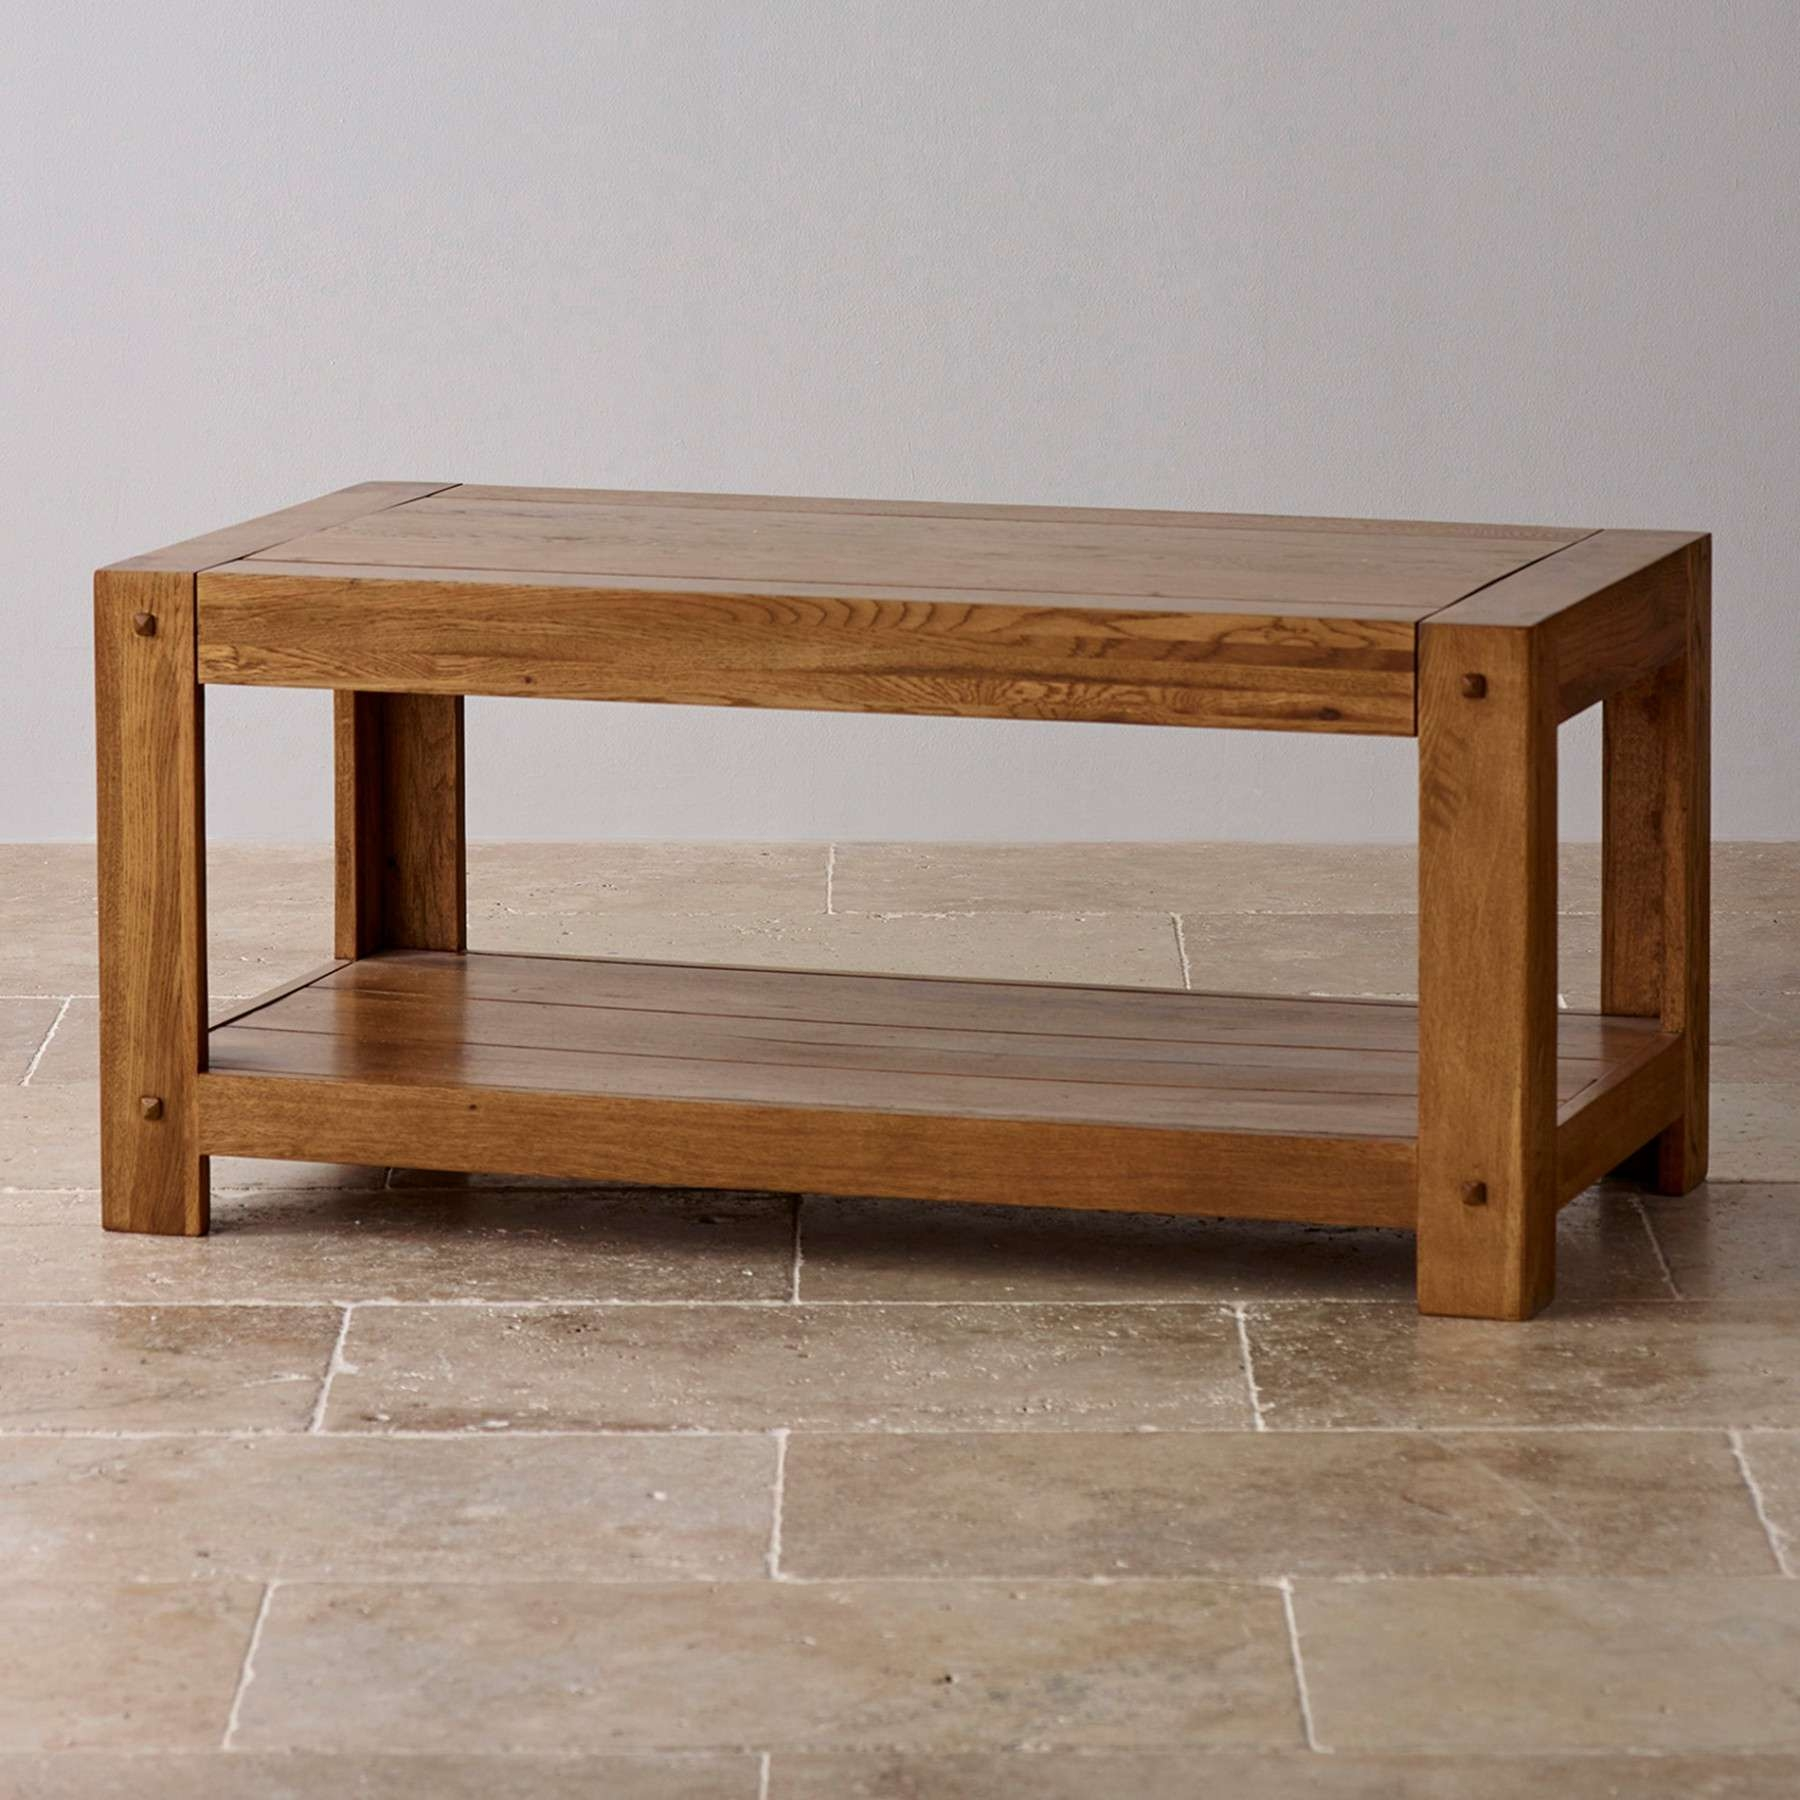 Quercus Rustic Solid Oak Coffee Table Oak Furniture Land Pertaining To Most Popular Solid Oak Coffee Tables (View 3 of 20)